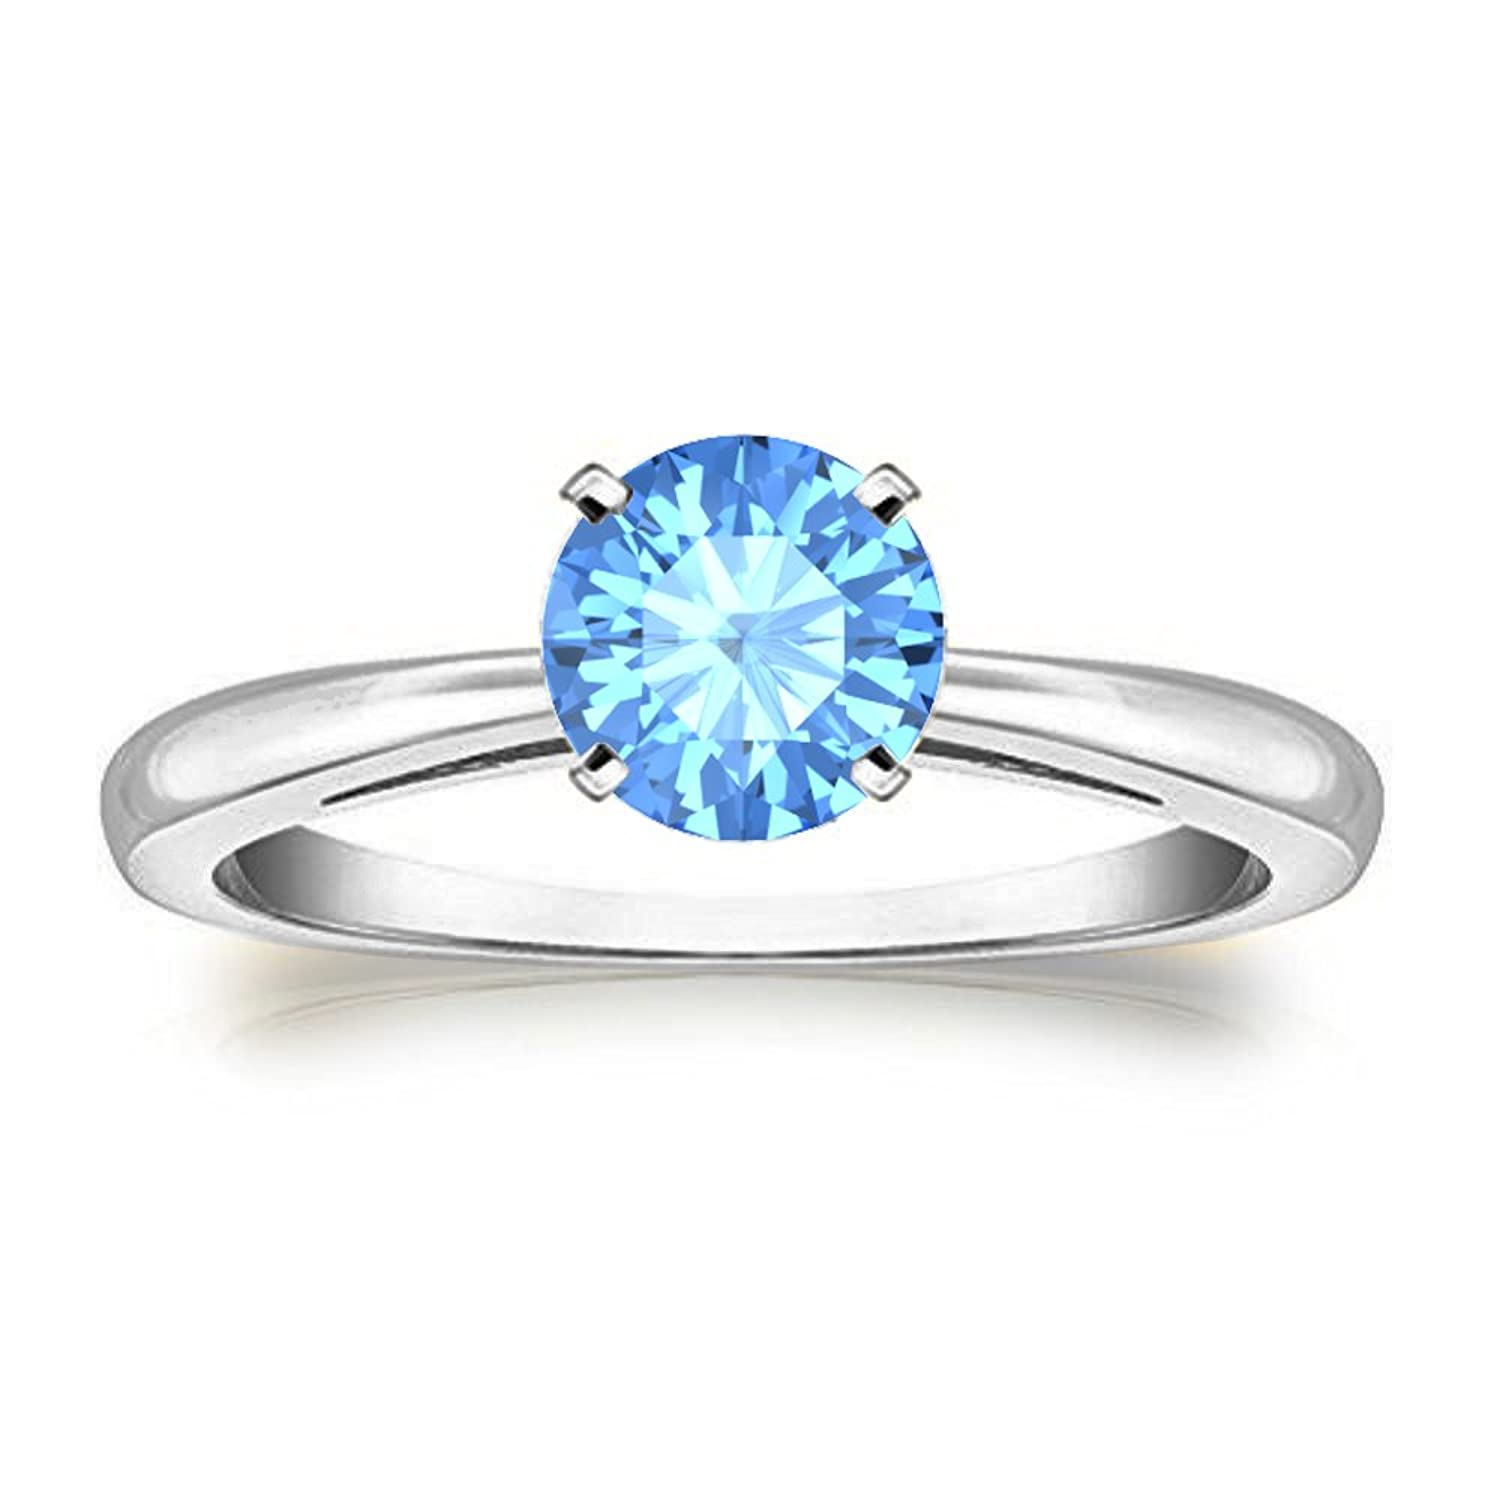 Awesome 14K White Gold Plated 1.00 Ct Round Cut Created Blue Topaz Solitaire Wedding Engagement Ring